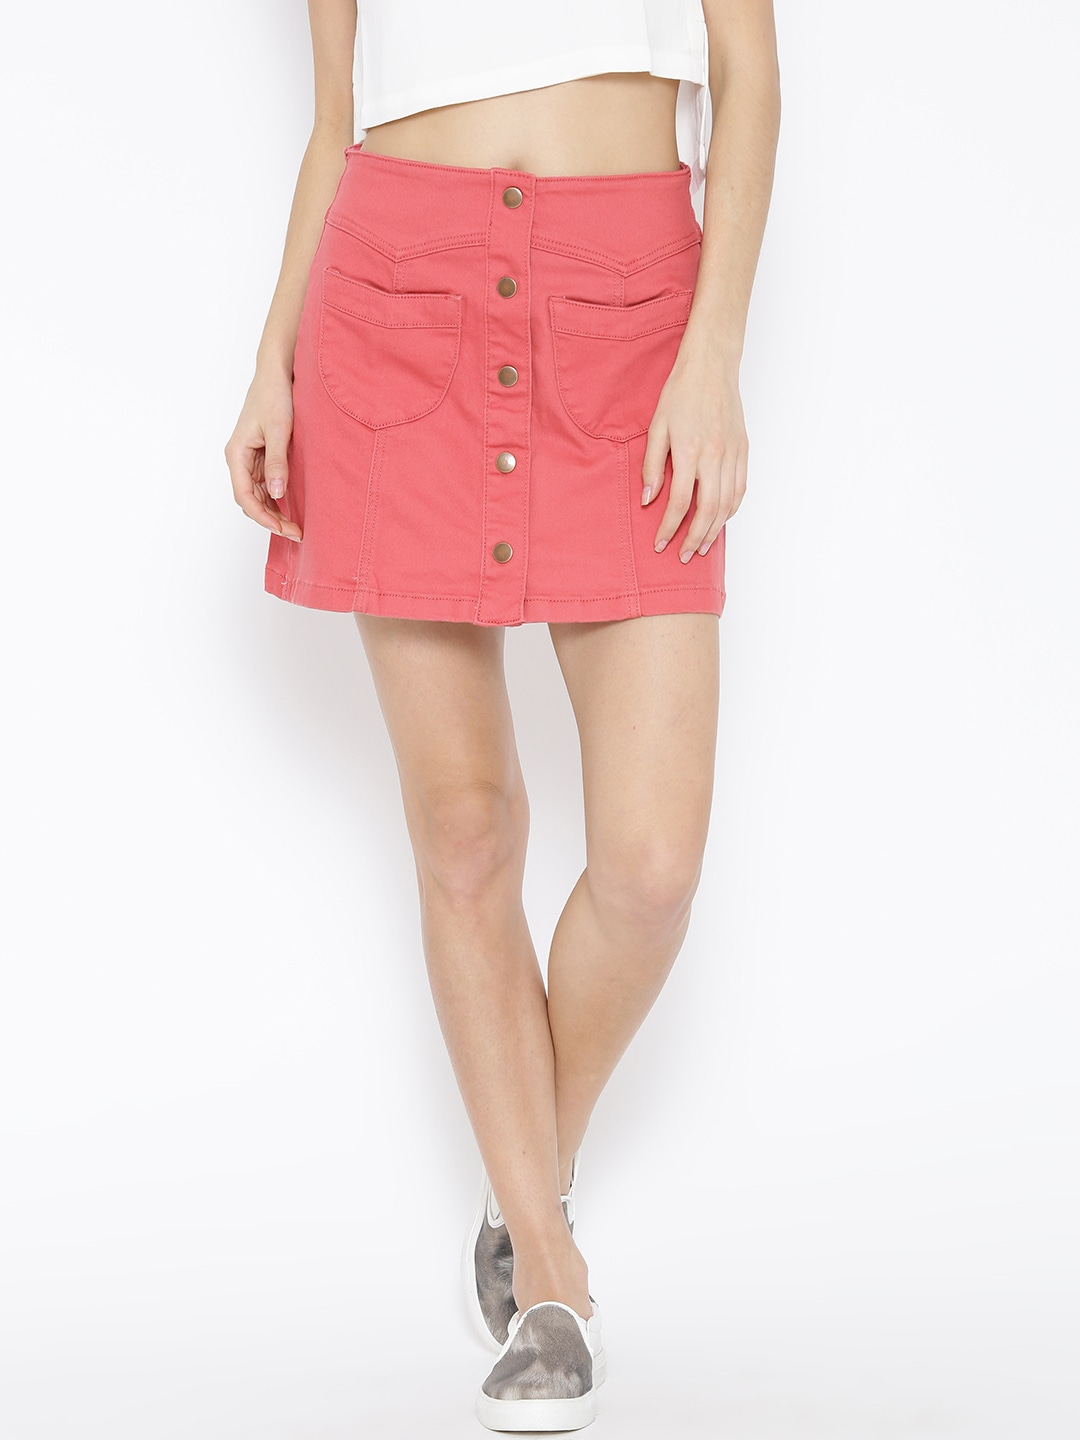 Buy Forever 21 Rust Orange Denim Skirt - Skirts for Women | Myntra